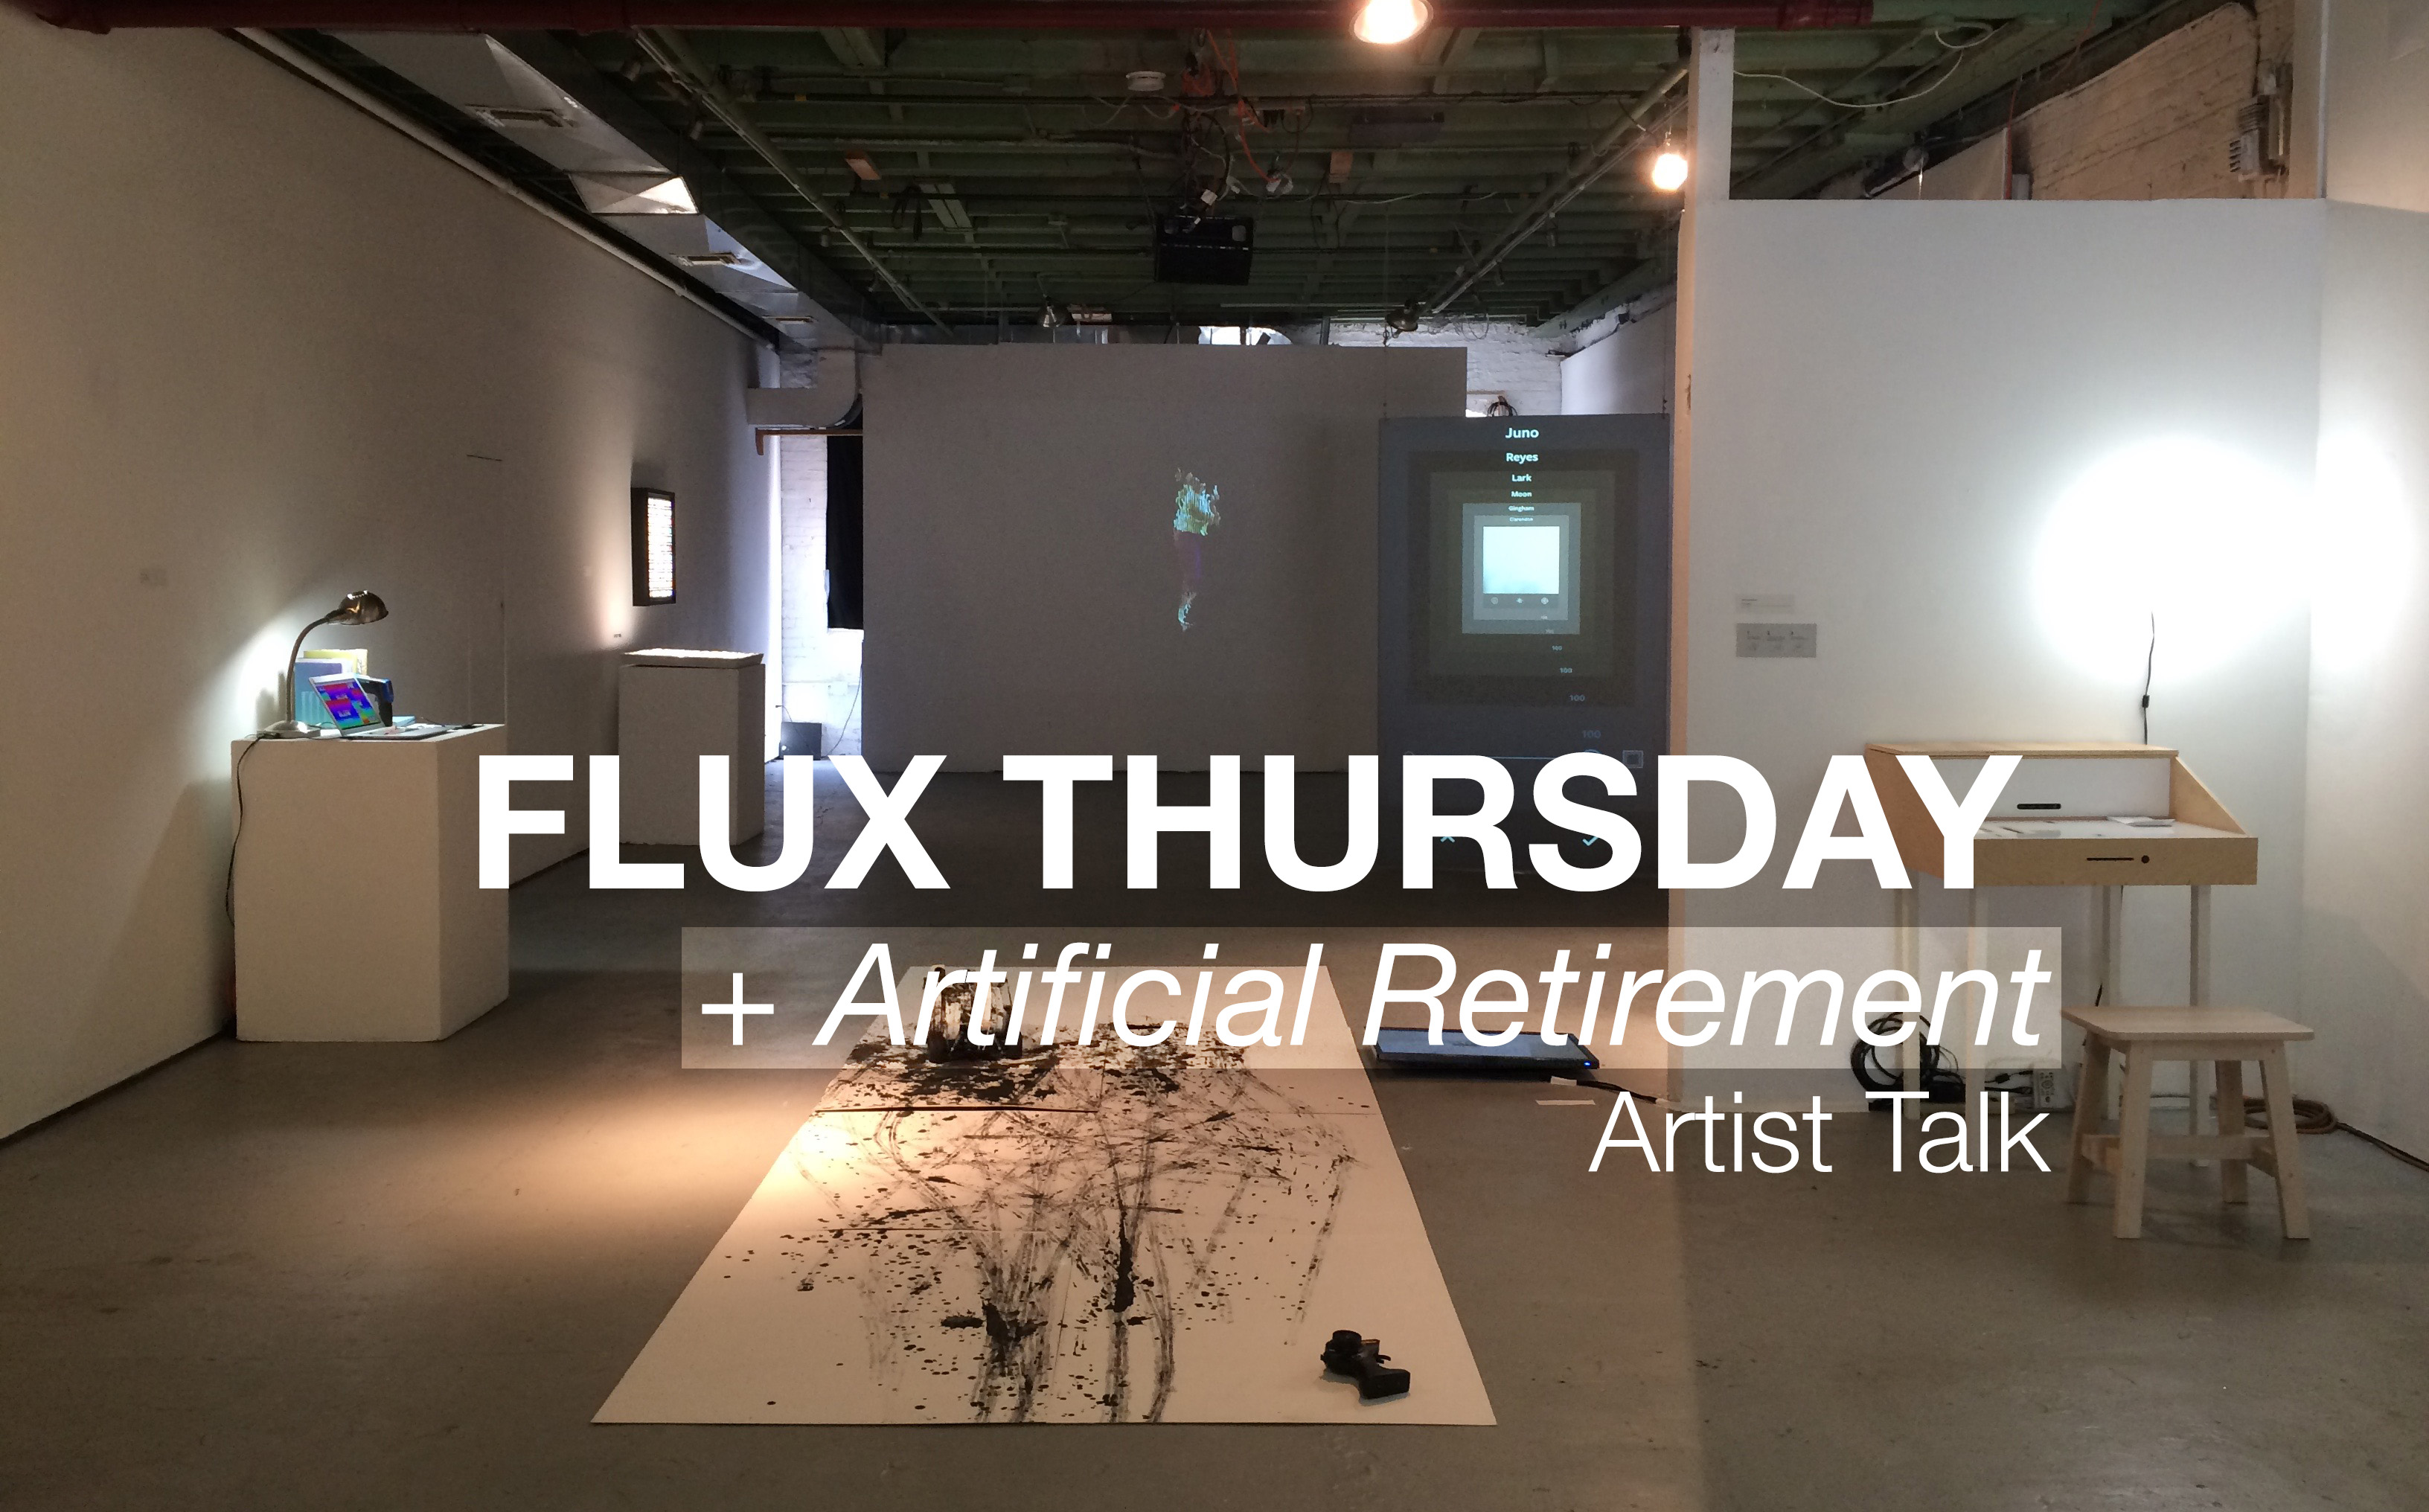 Flux Thursday : Artificial Retirement